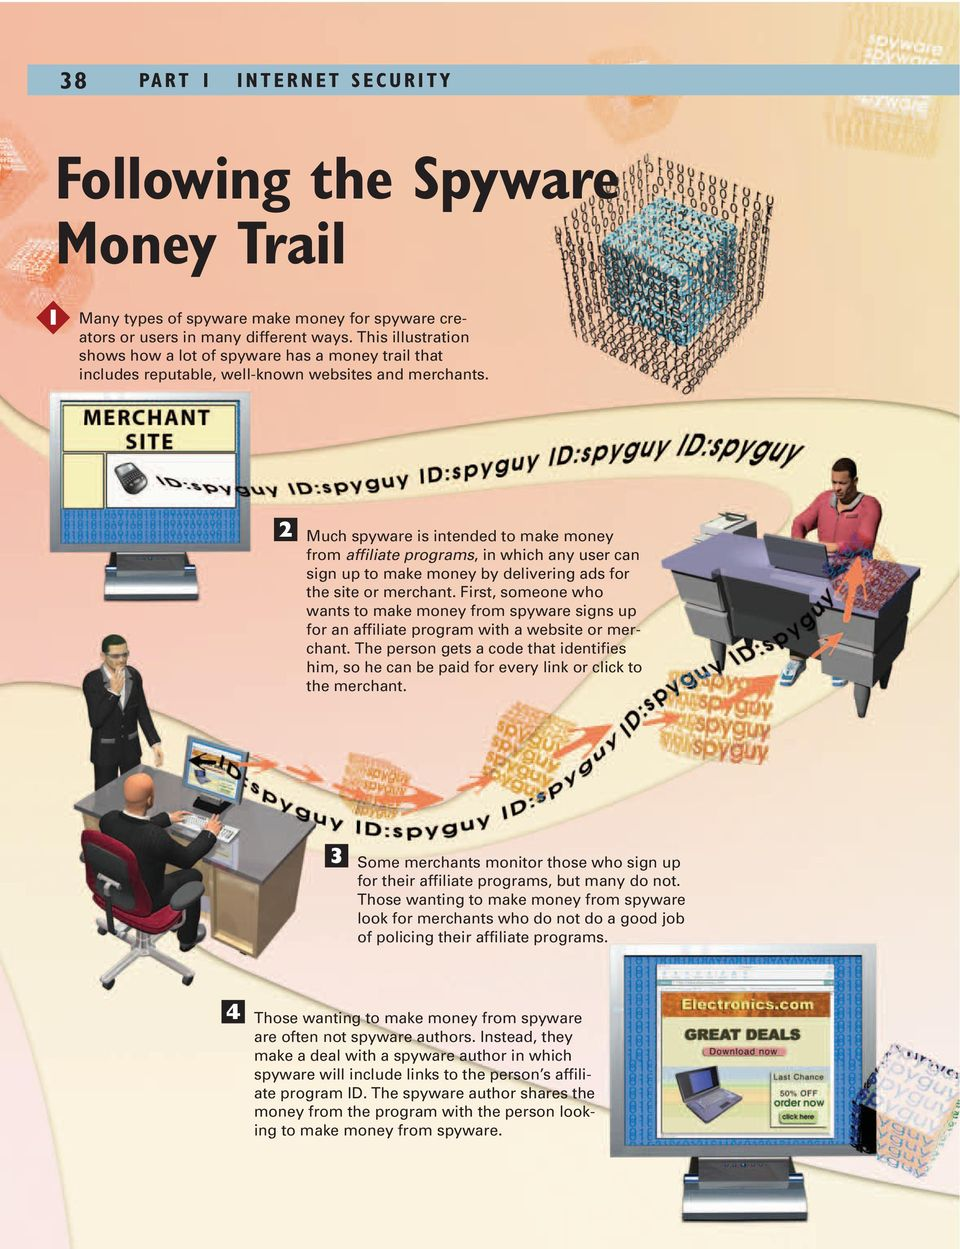 2 Much spyware is intended to make money from affiliate programs, in which any user can sign up to make money by delivering ads for the site or merchant.